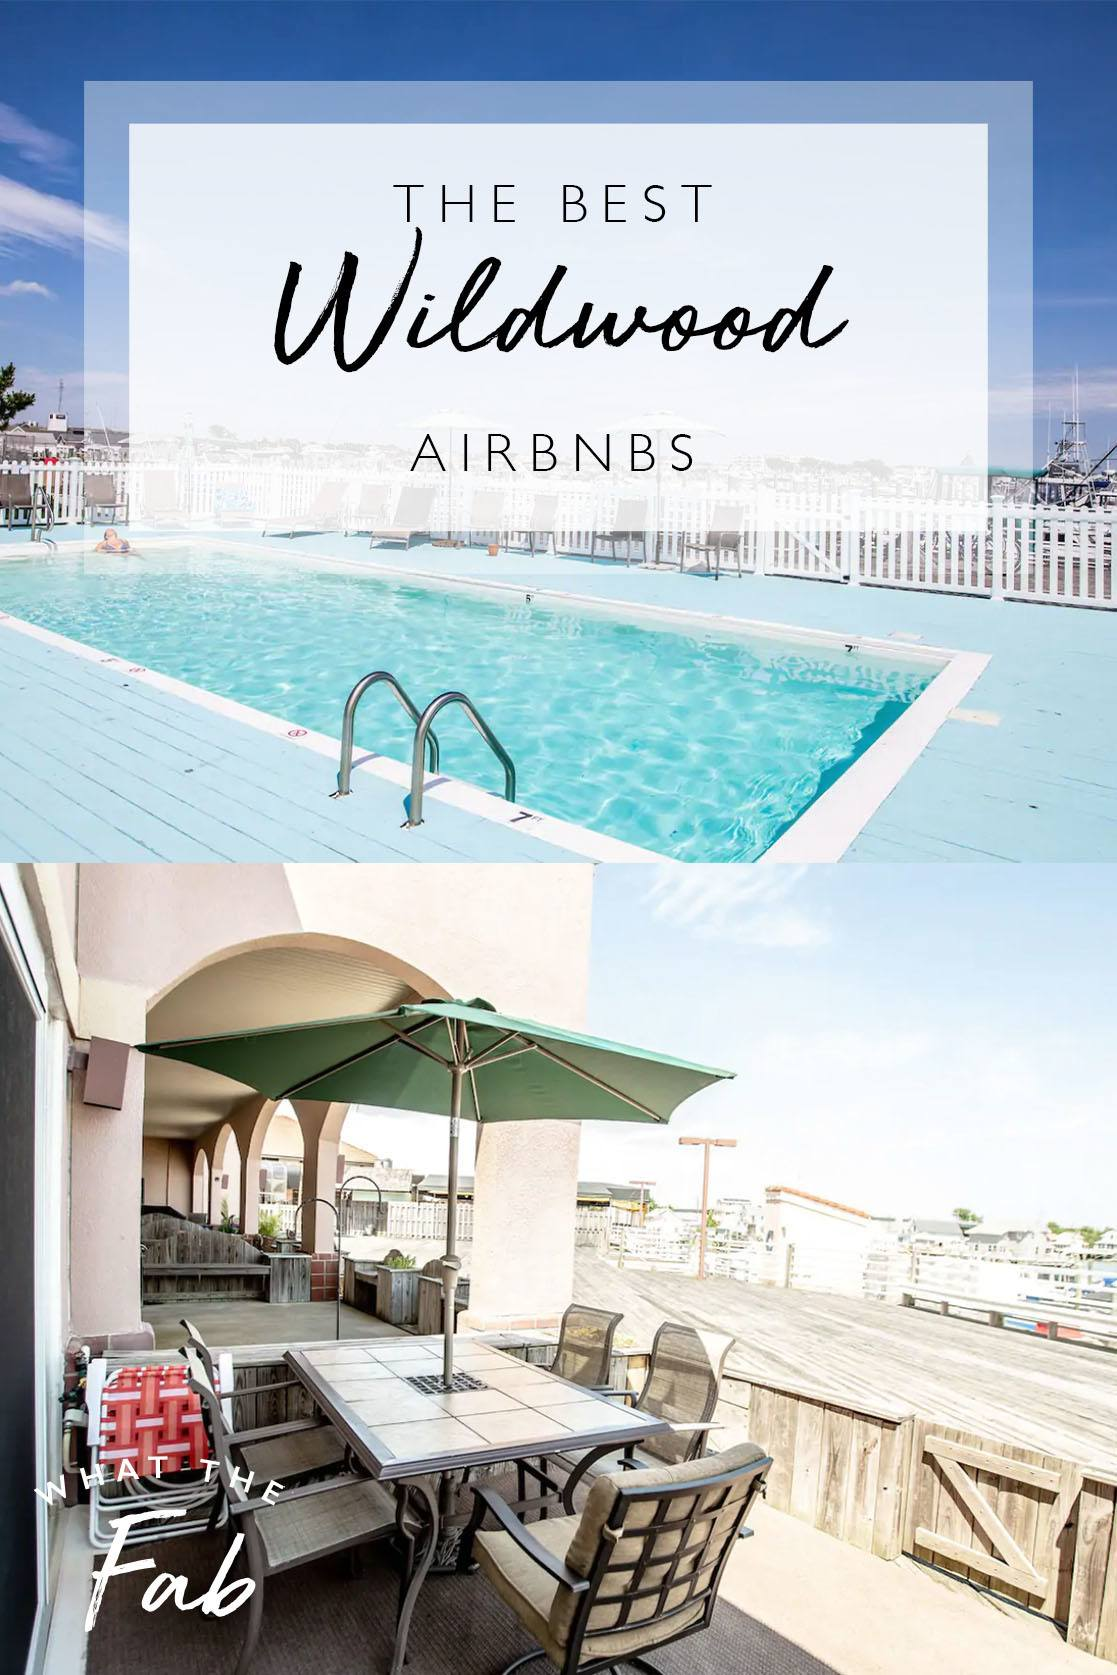 Airbnb Wildwood NJ, by Travel Blogger What The Fab